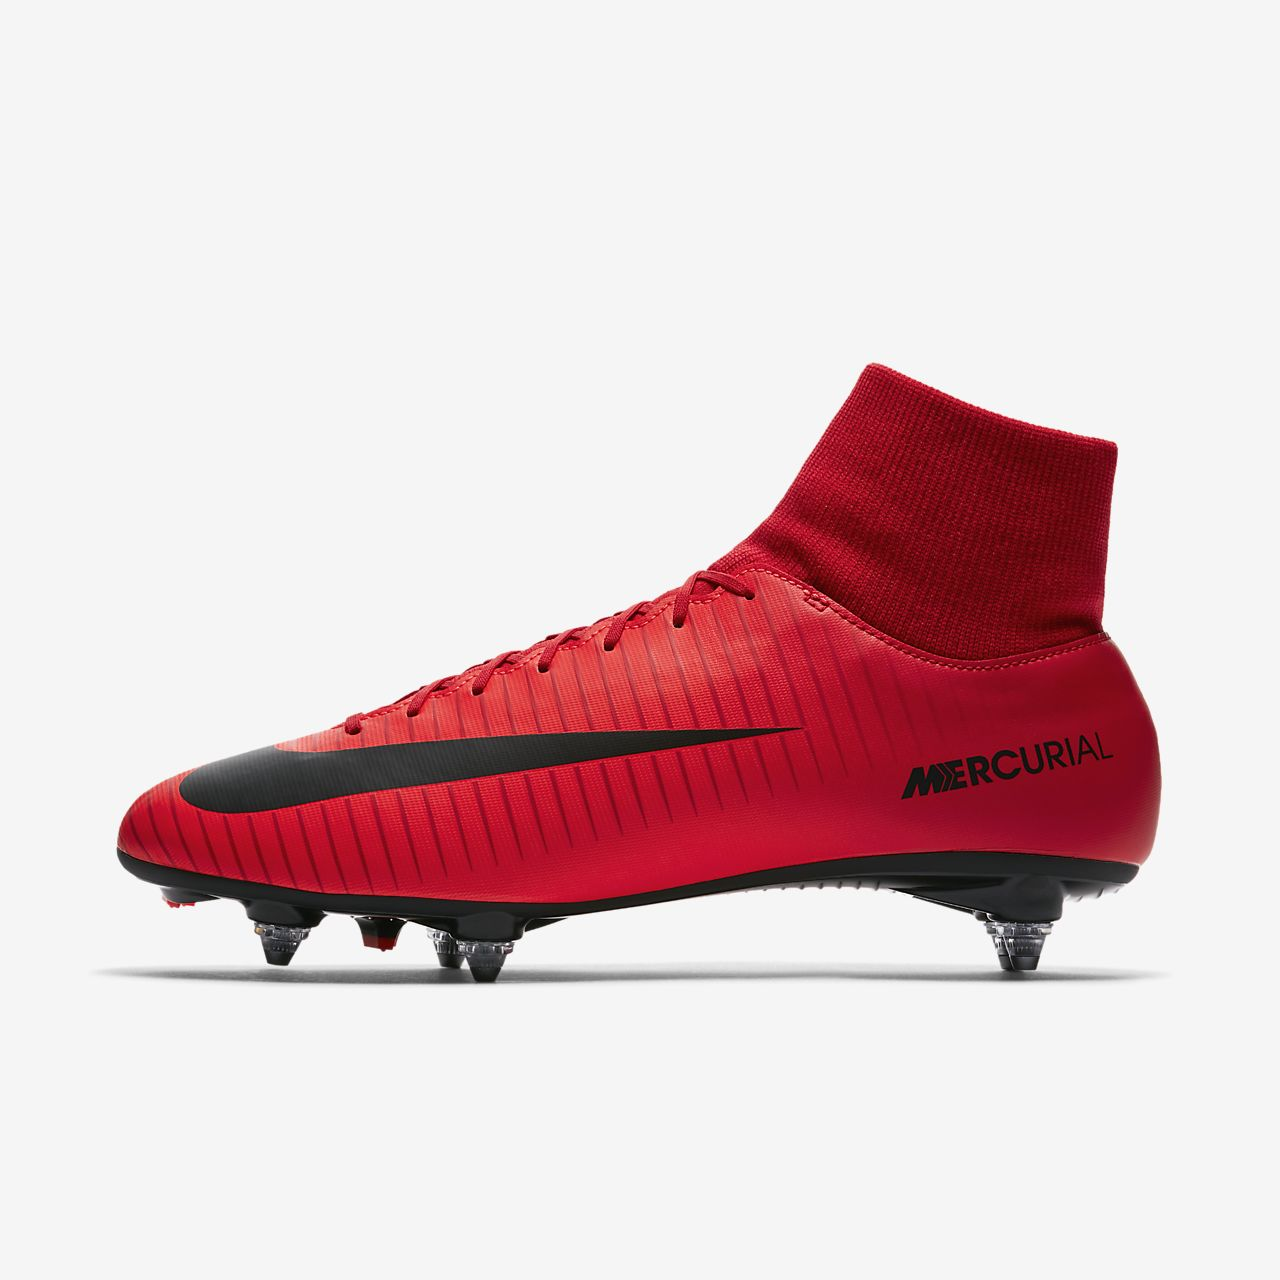 Nike Mercurial Victory VI Dynamic Fit SG (903610-616) Mens Football Boots Red/Black